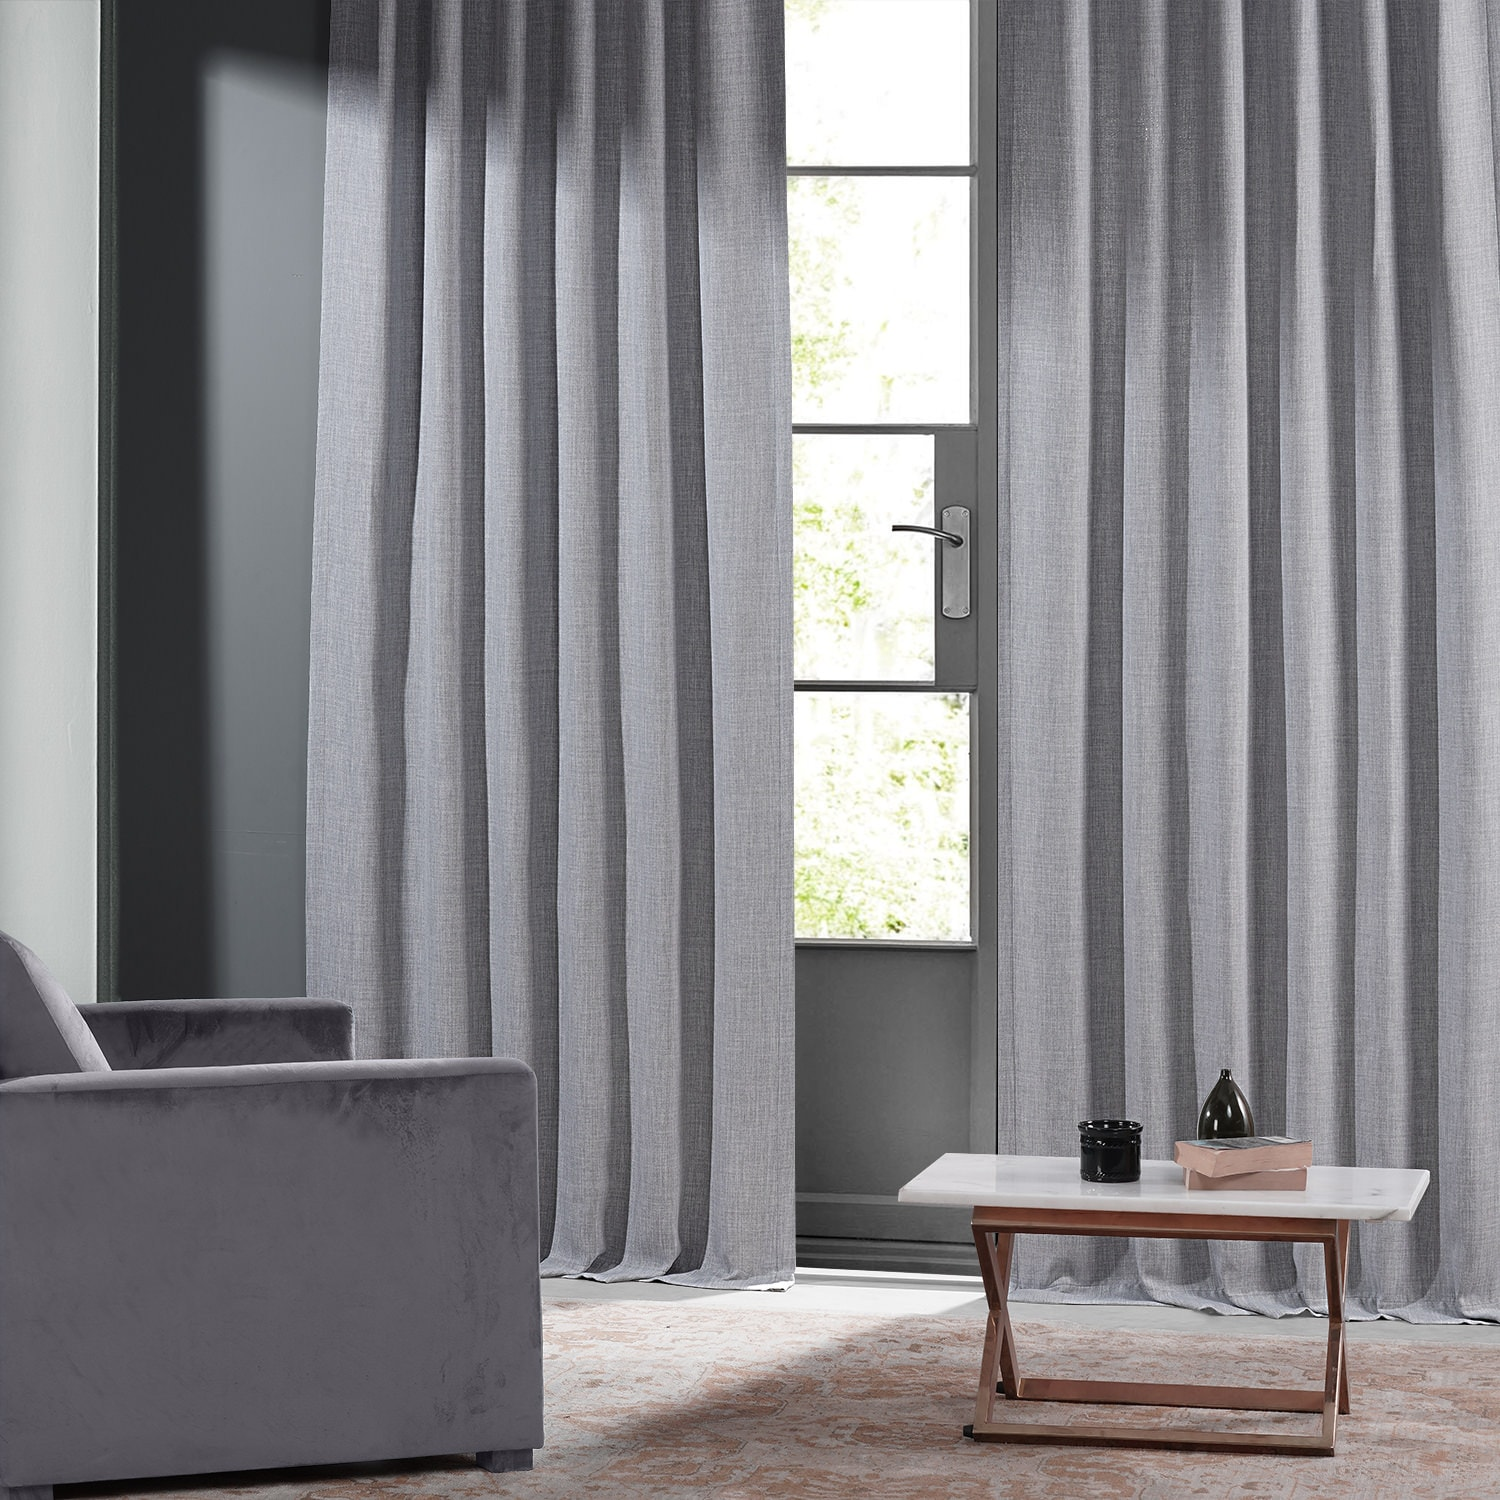 Chicago Grey Monochromatic Faux Linen Room Darkening Curtain Pair (2 Panels)